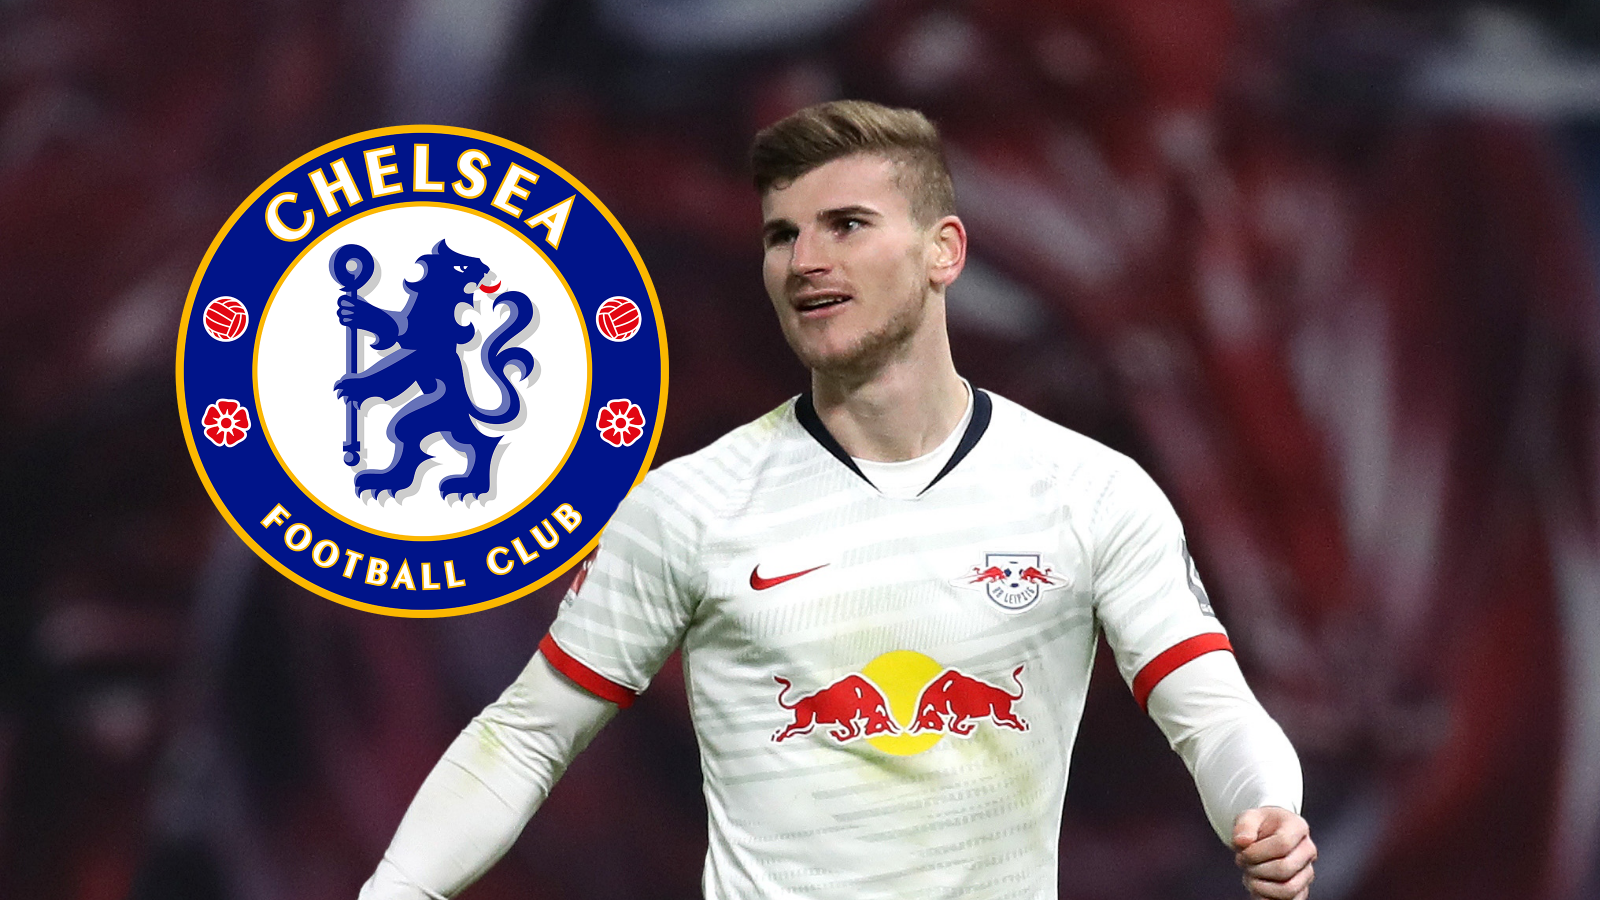 'Werner is a very dangerous player' - Pulisic impressed by £47.5m star's impact in Chelsea training